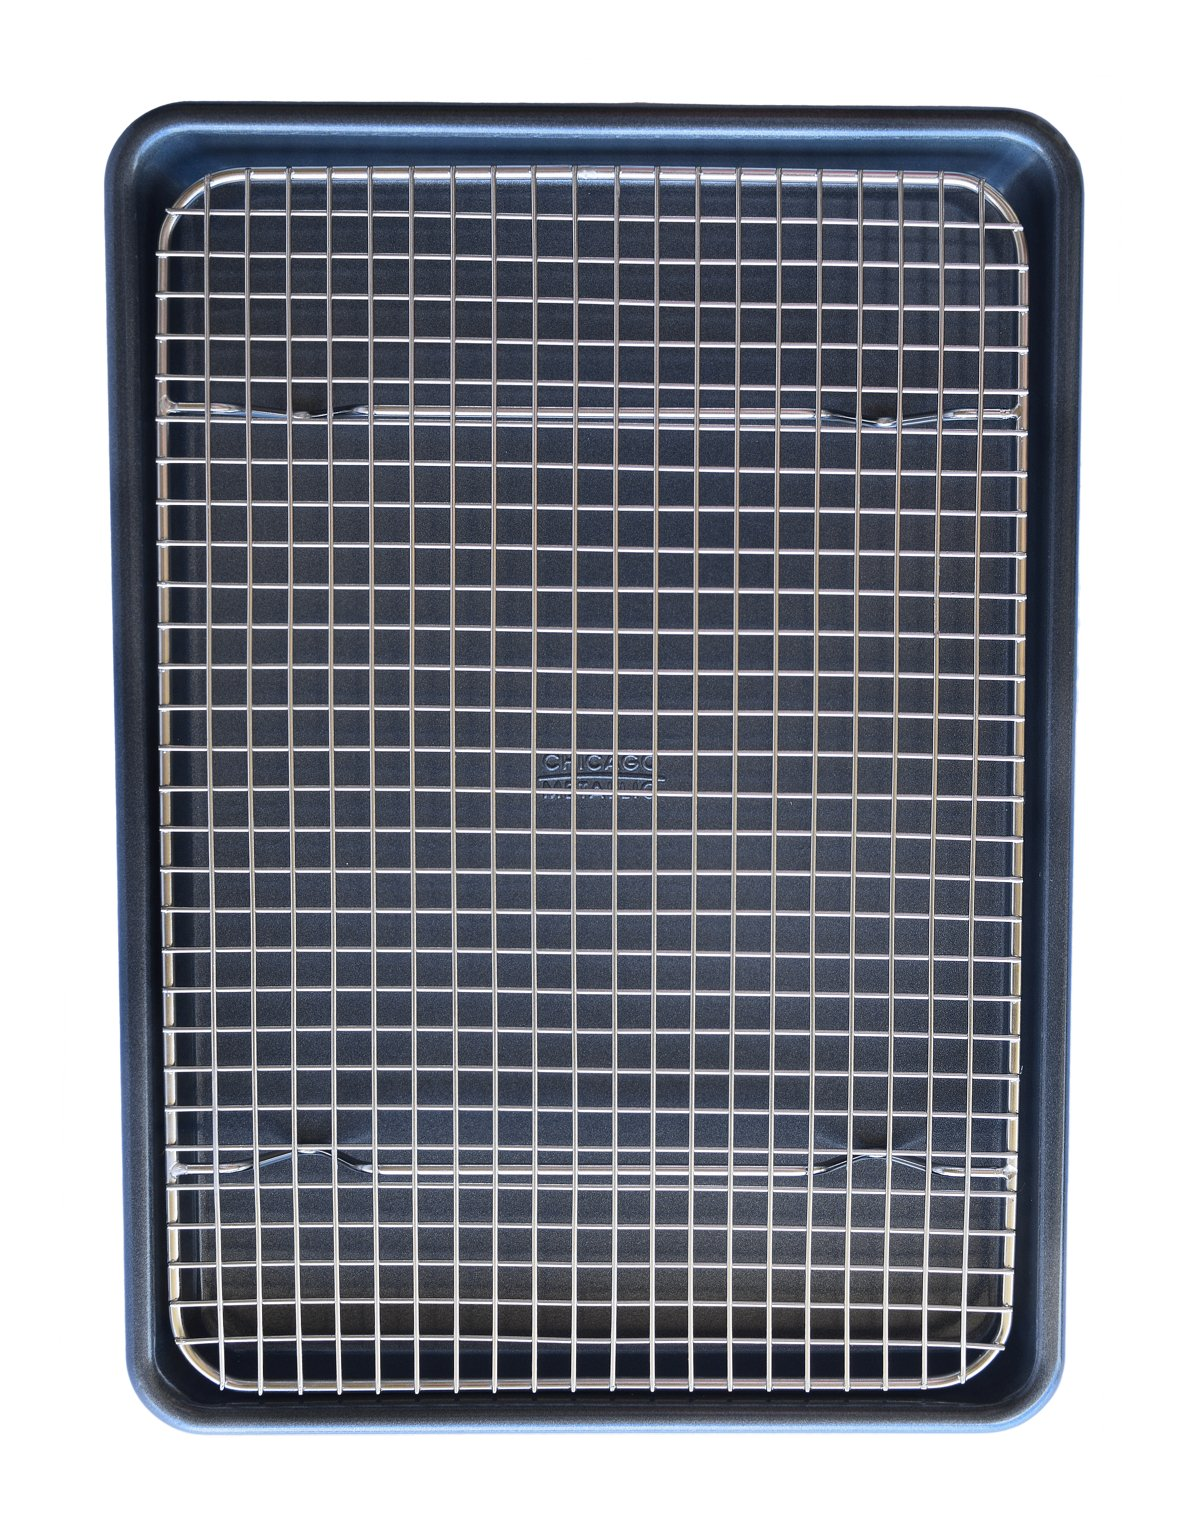 "KITCHENATICS Professional Grade Stainless Steel Cooling and Roasting Wire Rack Fits Half Sheet Baking Pan for Cookies, Cakes Oven-Safe for Cooking, Smoking, Grilling, Drying - Heavy Duty Rust-Proof 6 COMMERCIAL GRADE 304 (18/8) STAINLESS STEEL cooling rack, RUST RESISTANT, NONTOXIC and DISHWASHER_SAFE for long-lasting durability. SUPREME DURABILITY with 1-INCH (1"") IN HEIGHT for optimal airflow, allows air to circulate around all sides of the pan for absolutely perfect cooking and cooling. OVEN-SAFE to 575˚F for effective roasting, and best for grilling, baking, broiling, smoking, bbq and drying. There is no need to flip your food while cooking. You will get a crisp and juicy chicken, bacon, turkey, pulled pork, bbq ribs and other meat and vegetable dishes without any sweating."